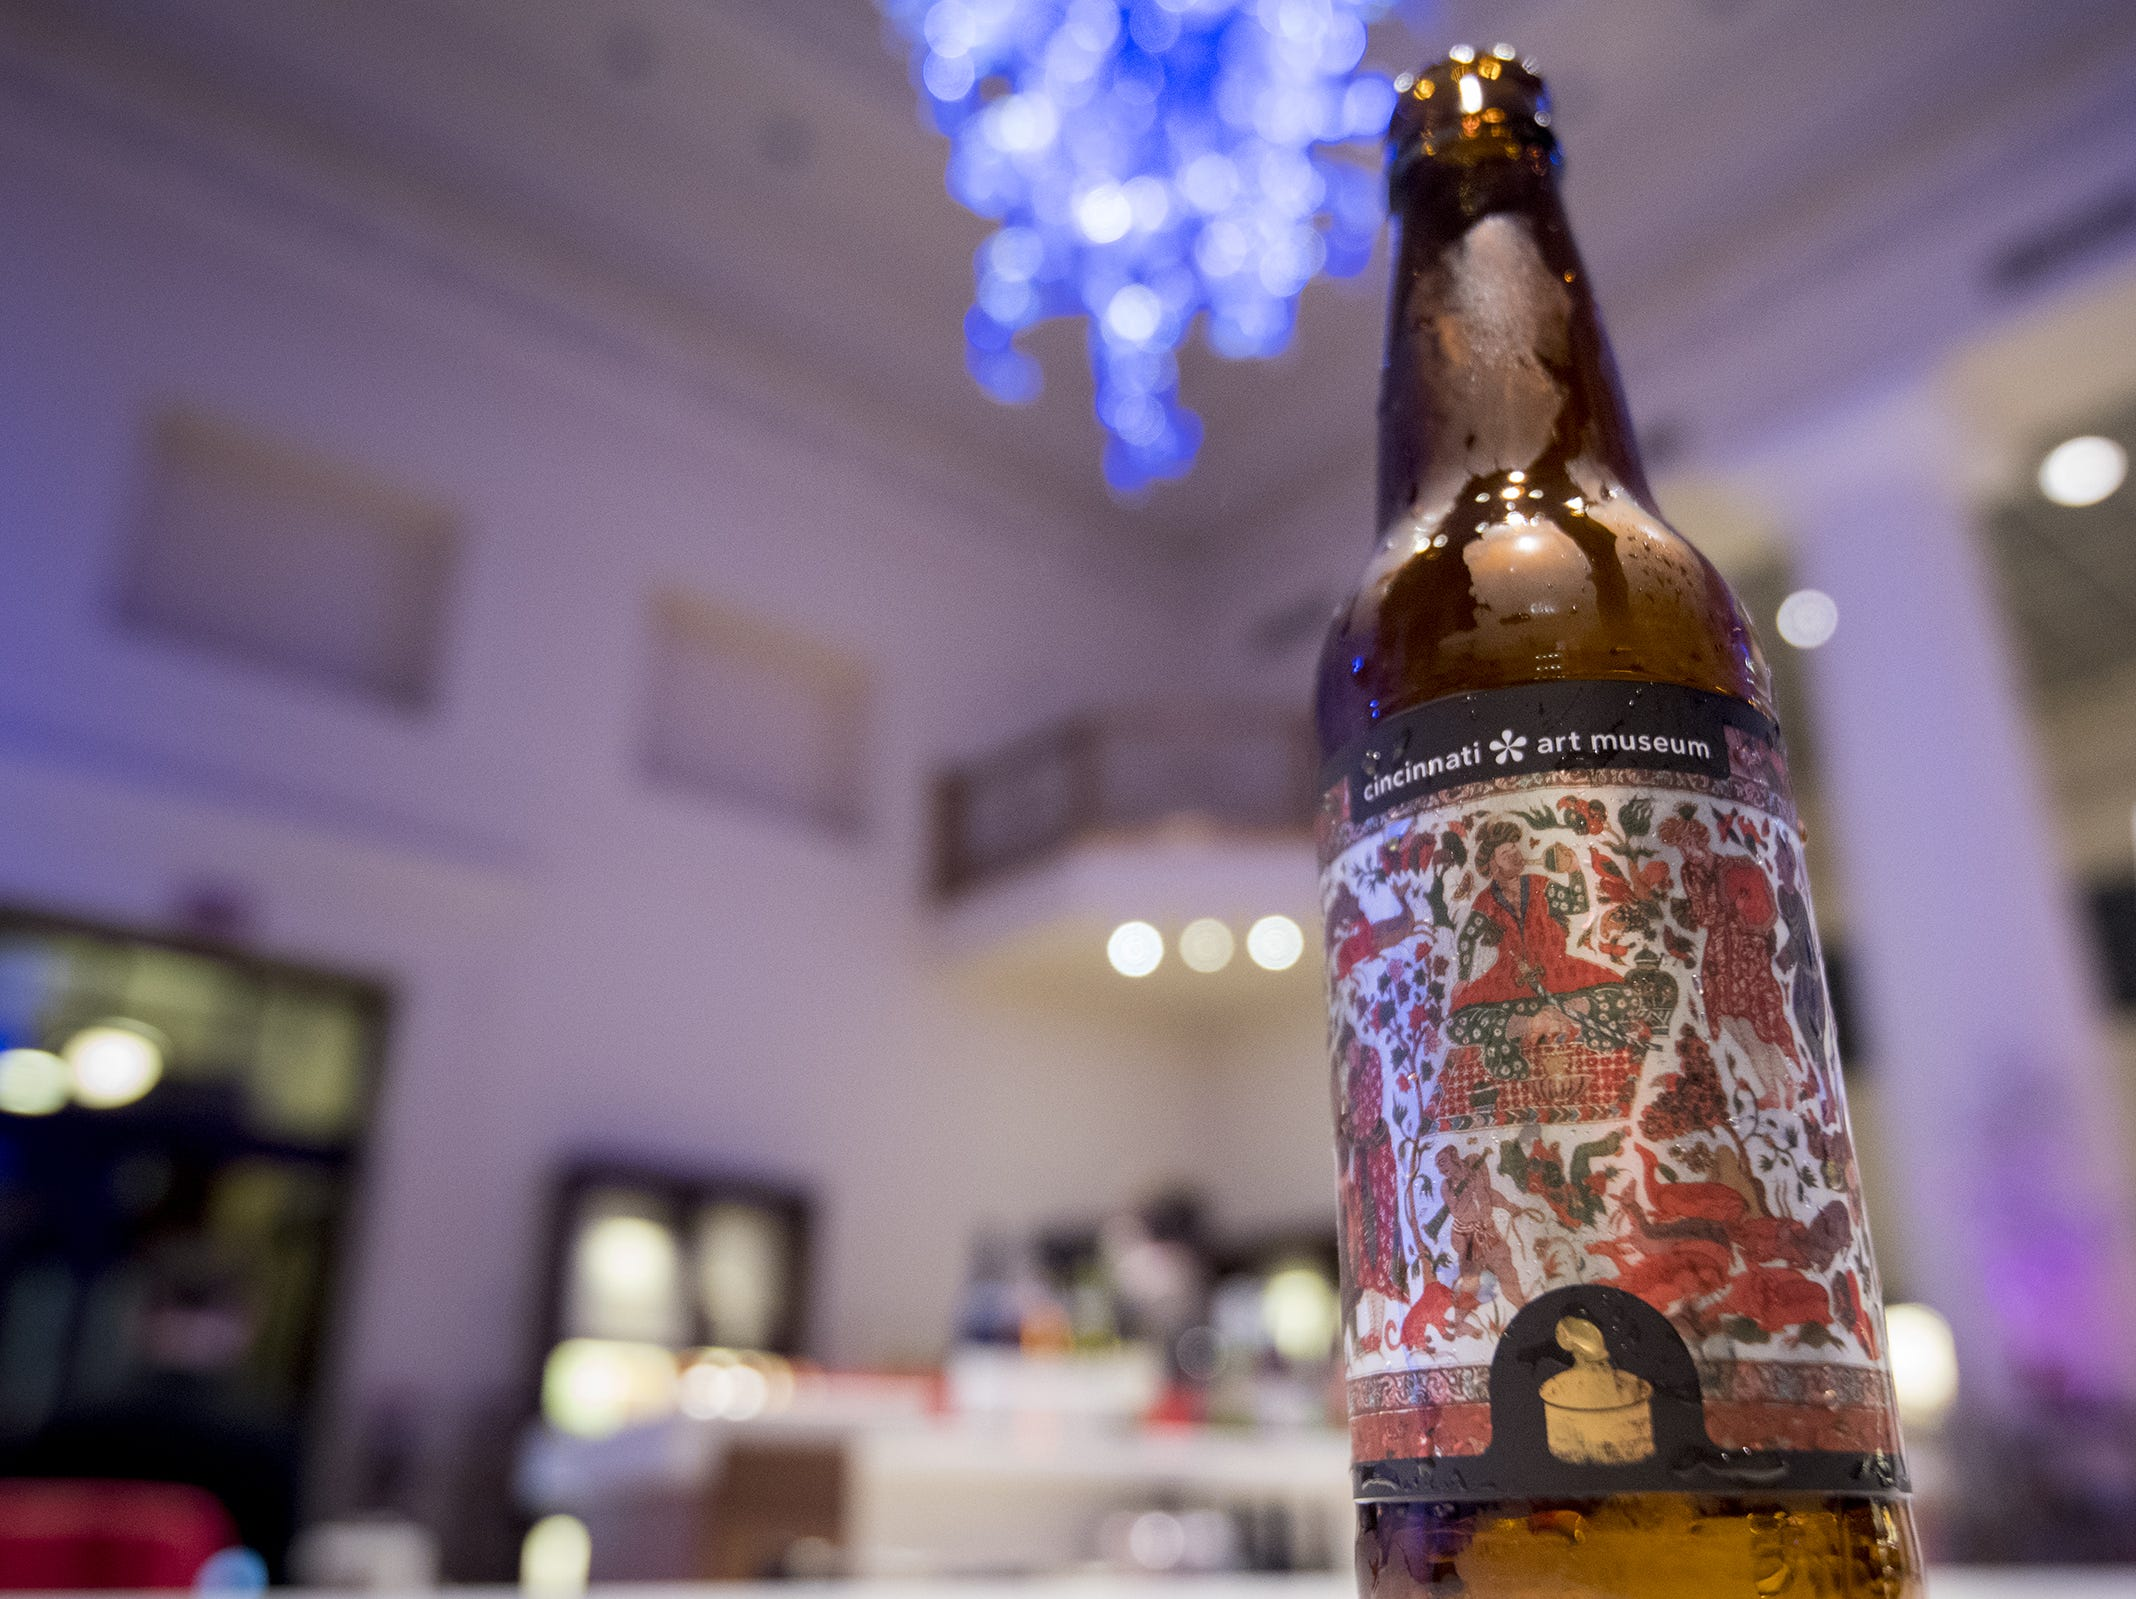 The Cincinnati Art Museum offers their beer in collaboration with Listermann Brewing, Sari not Sorry, during Art After Dark Wednesday, November 21, 2018 in Cincinnati, Ohio. The curry stout is a limited release to celebrate the exhibit the Fabric of India.